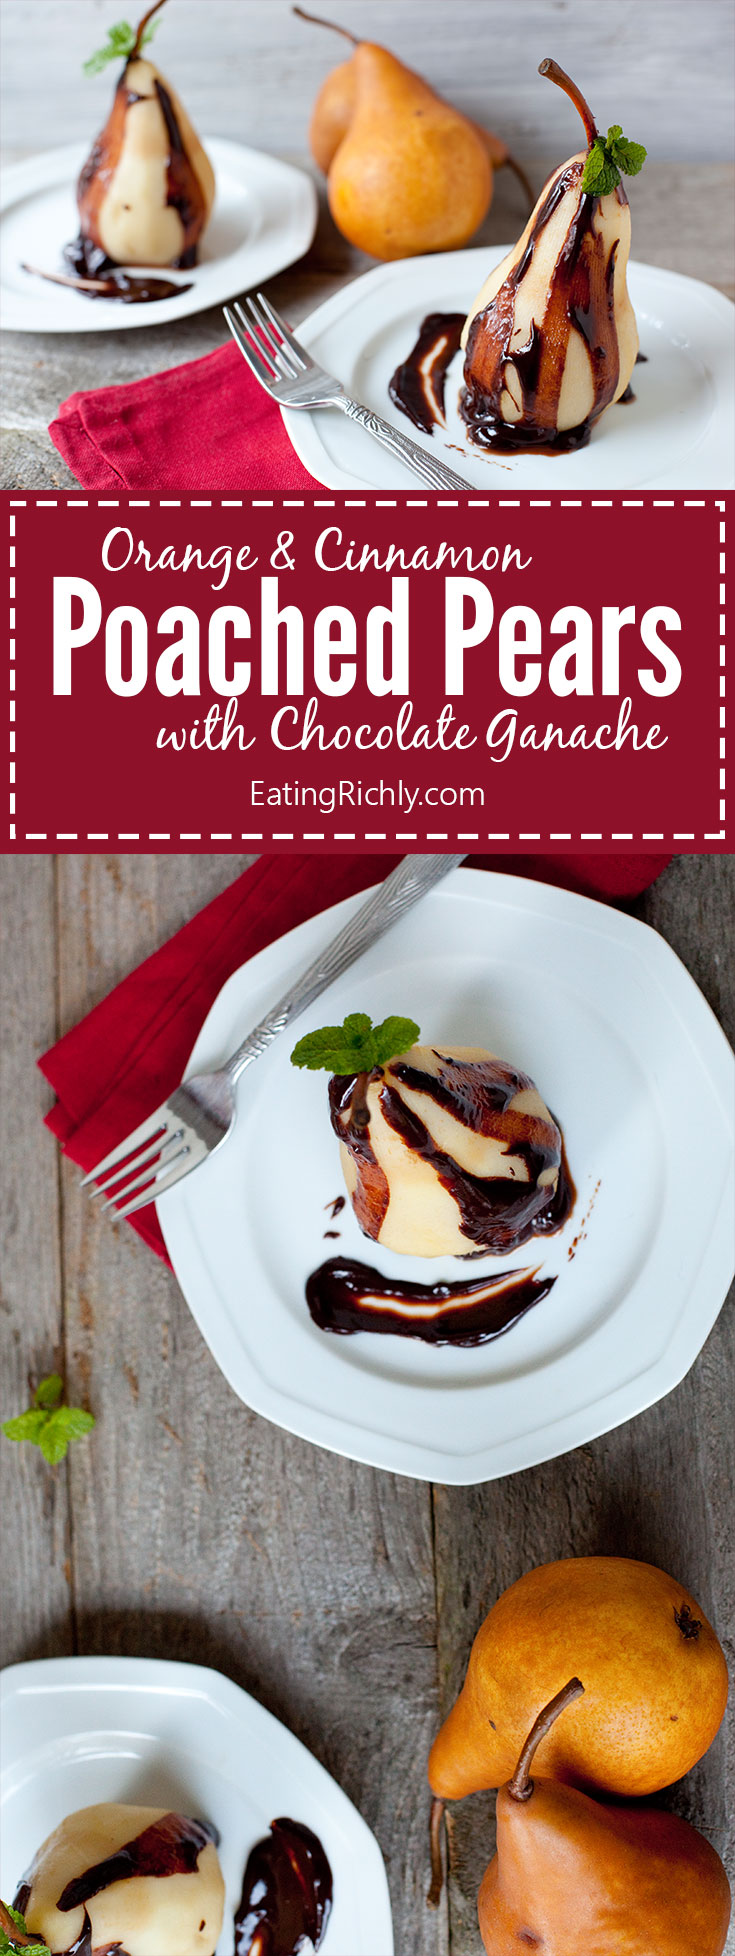 These orange and cinnamon poached pears with chocolate ganache make an elegant yet easy dessert for any special occasion. Perfect for Valentine's Day! From EatingRichly.com